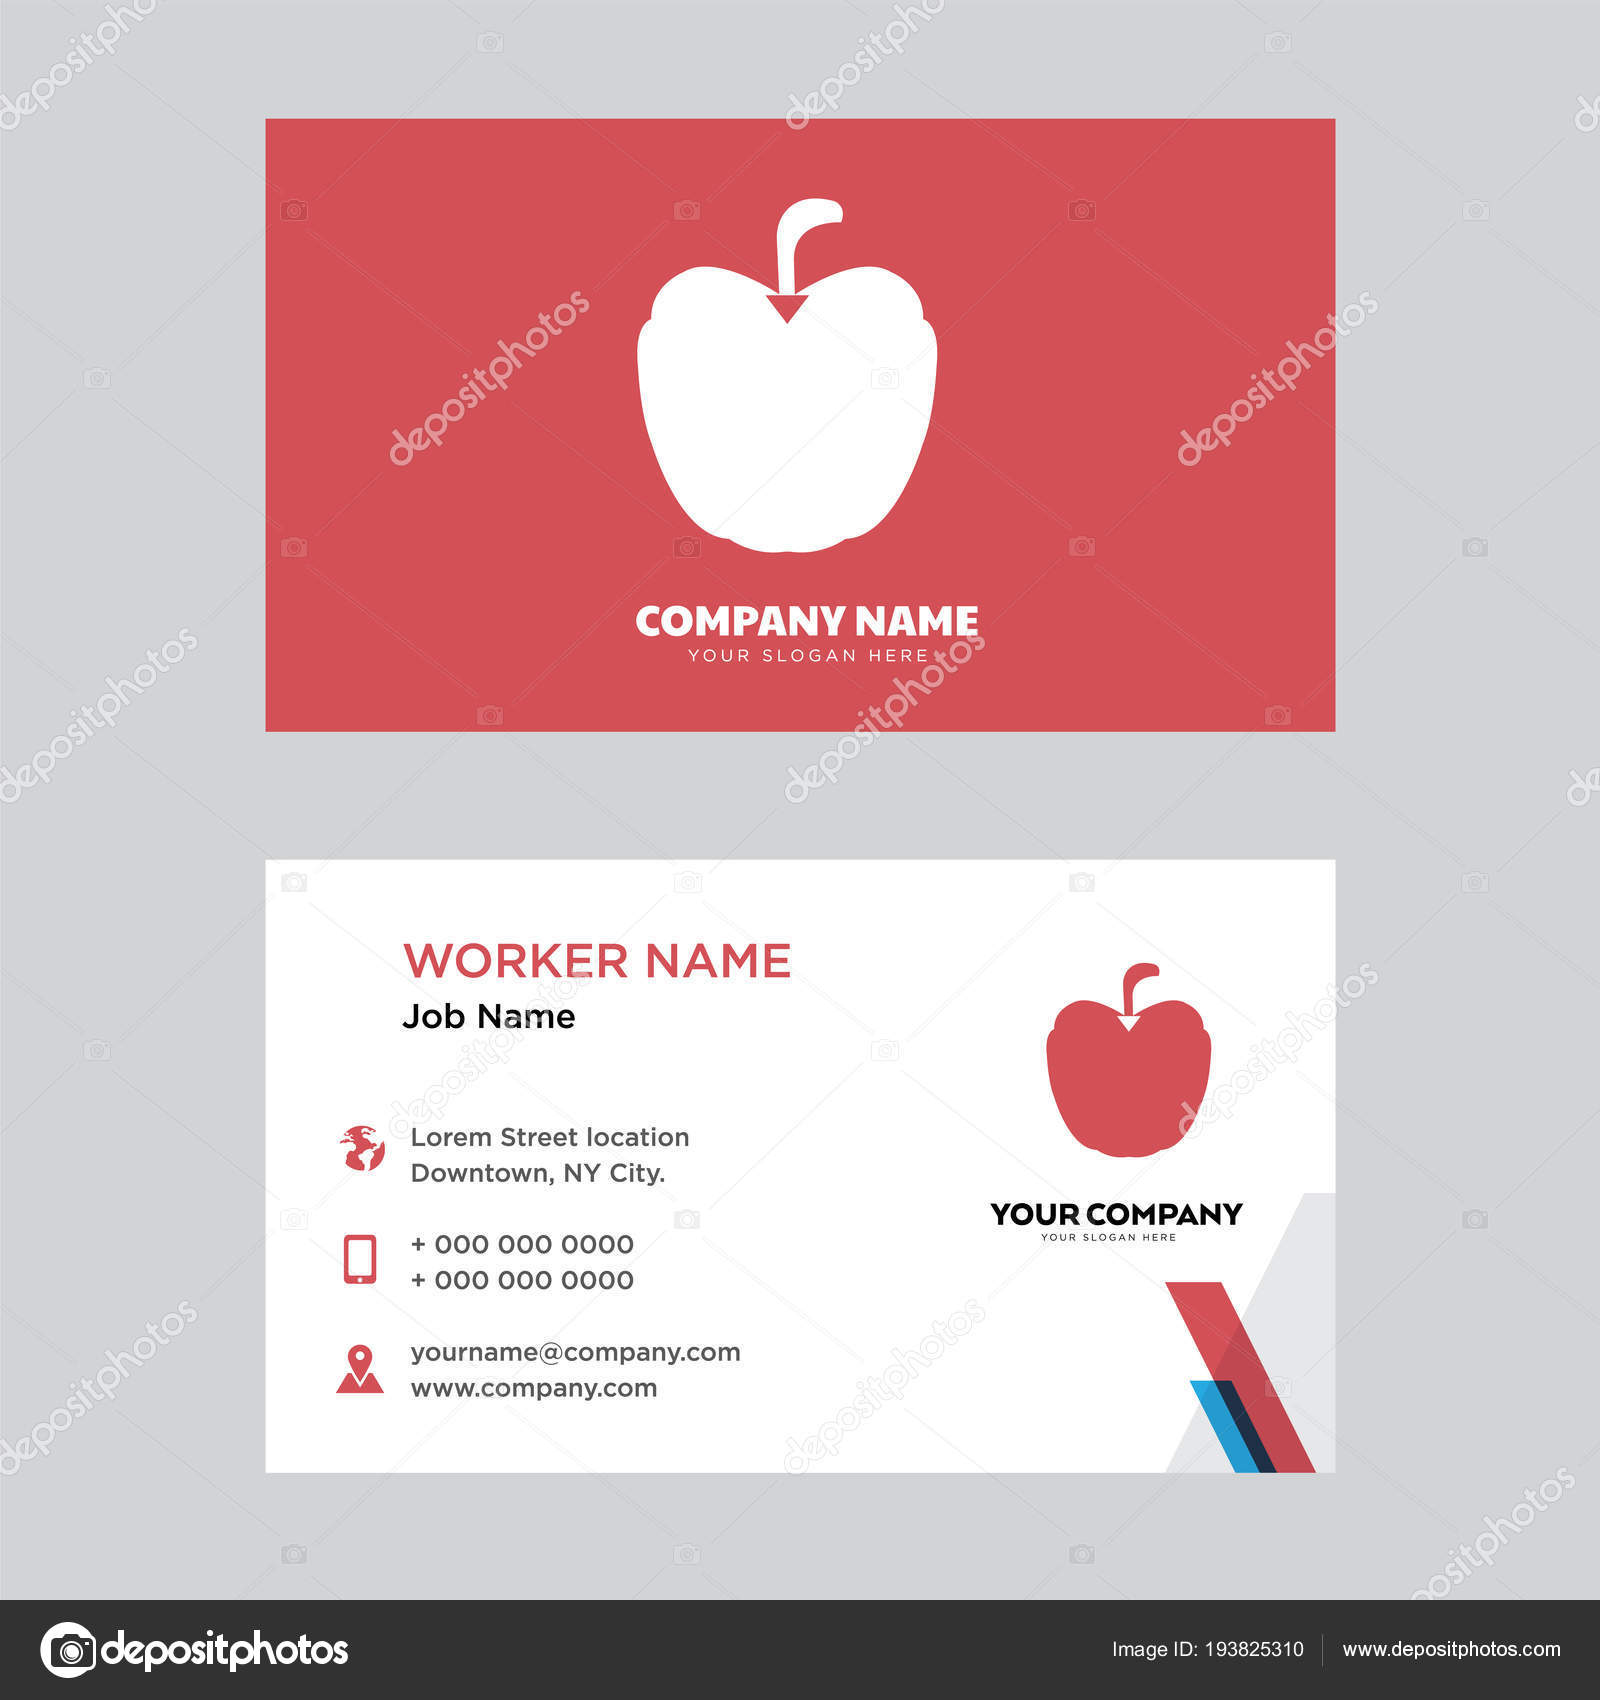 Apple business card design stock vector vectorbest 193825310 apple business card design template visiting for your company modern creative and clean identity card vector vector by vectorbest colourmoves